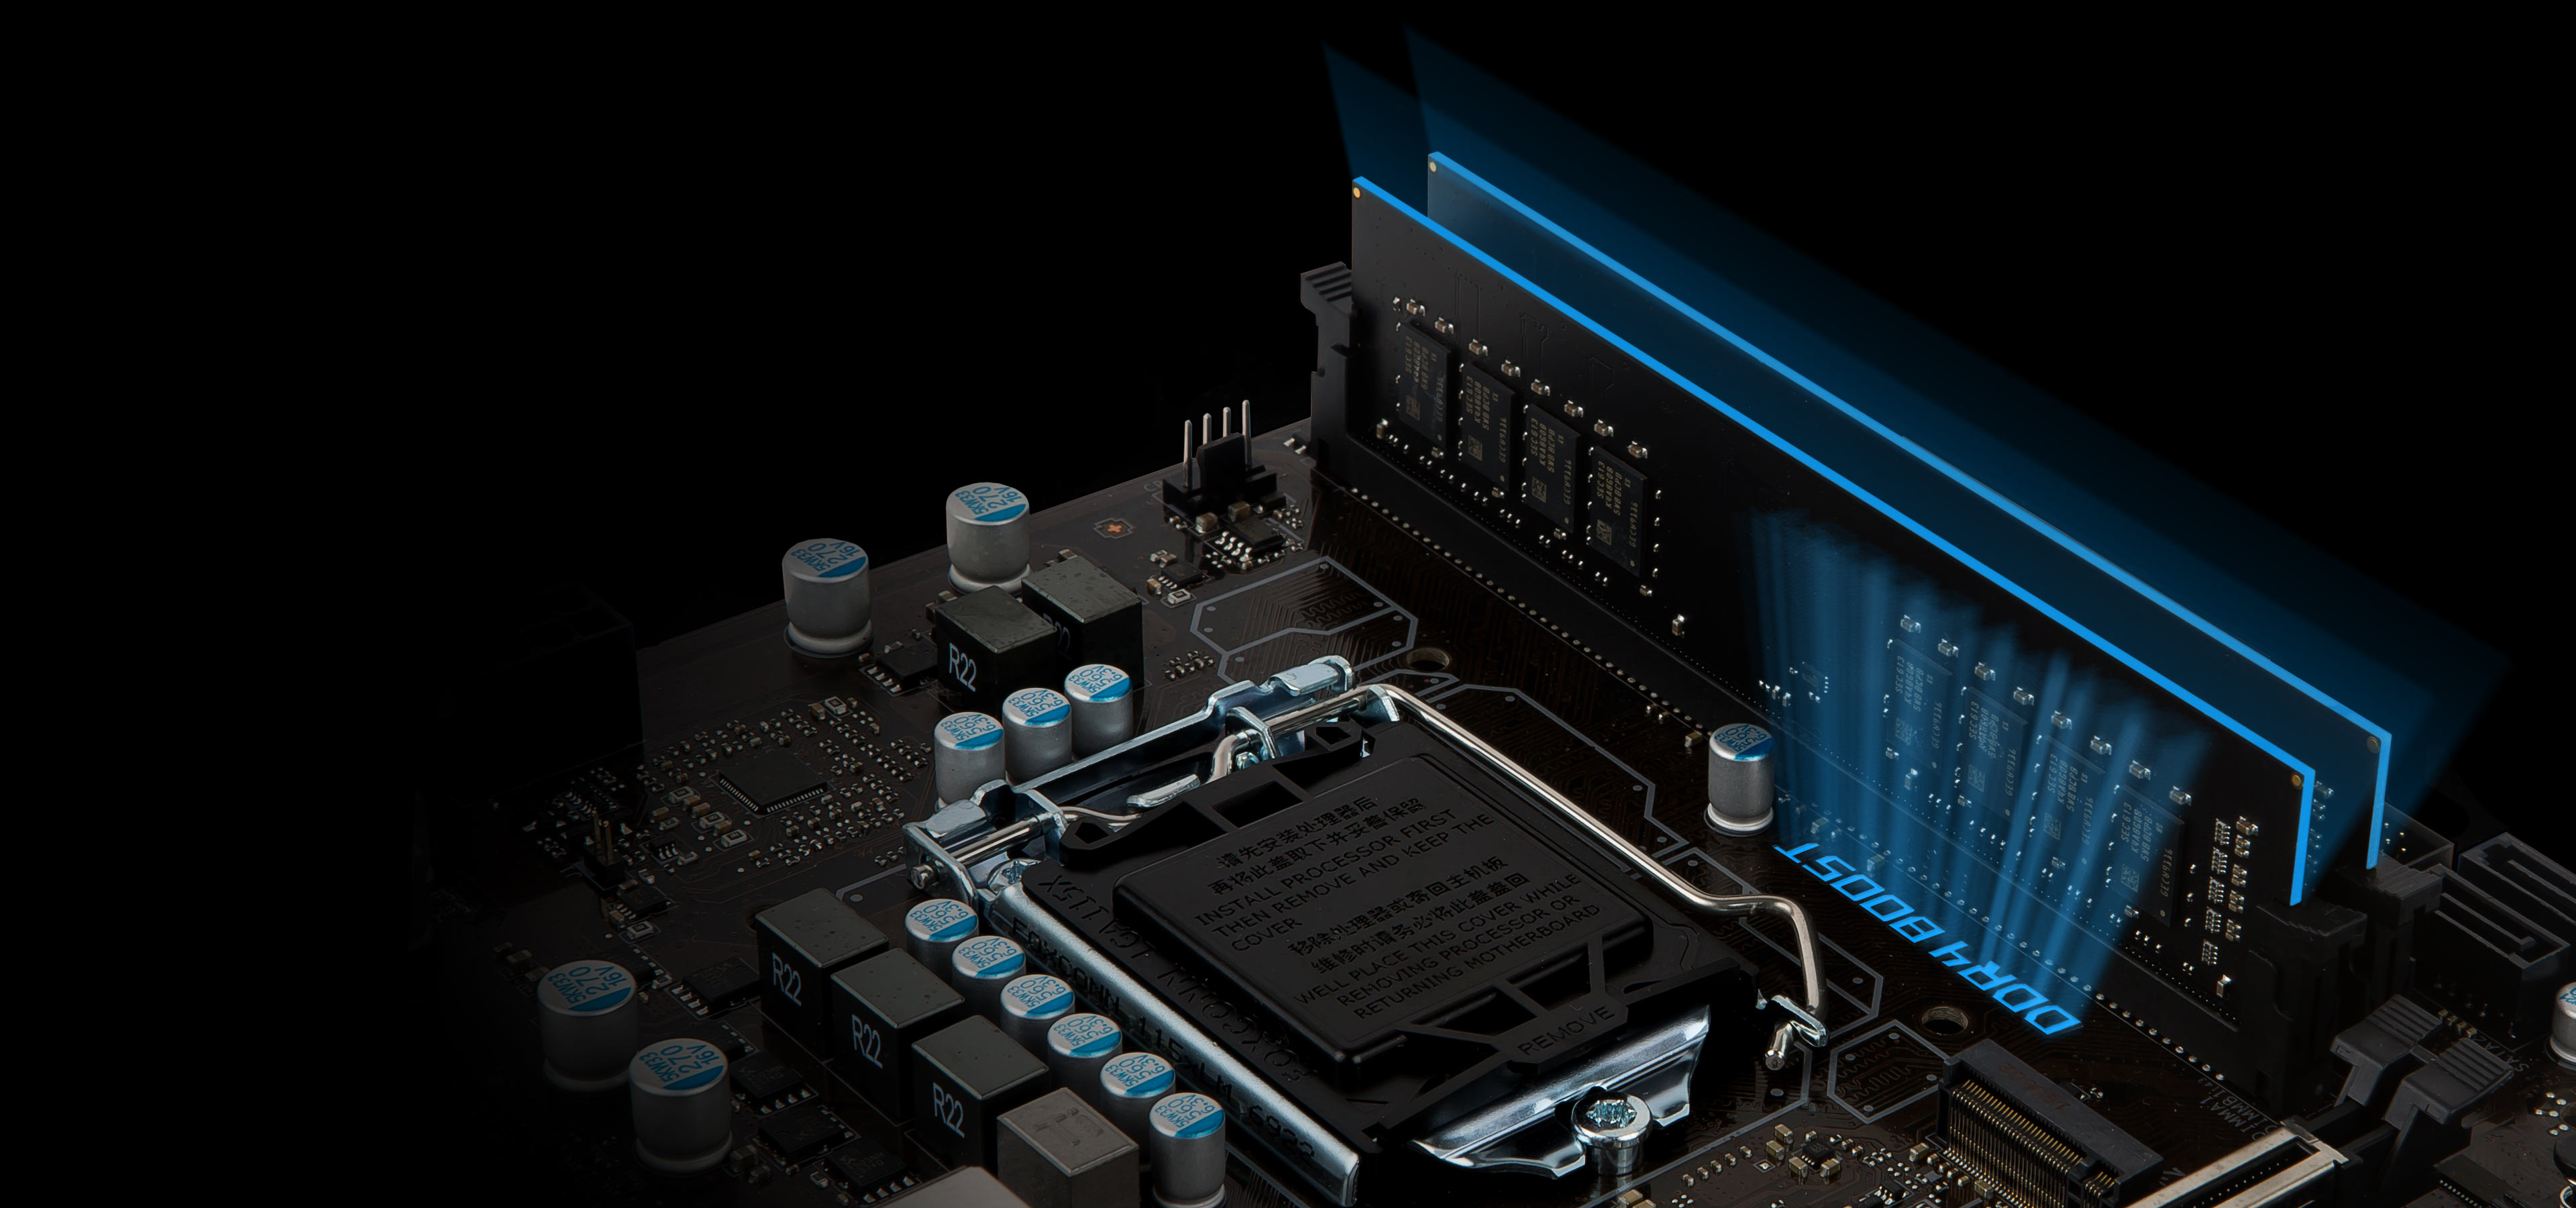 B250m Pro Vdh Motherboard The World Leader In Design Su Fuel Pump Diagram Msi Motherboards Are Crammed With Features To Your Systems Memory More Speed Higher Overclockability And Increased Stability